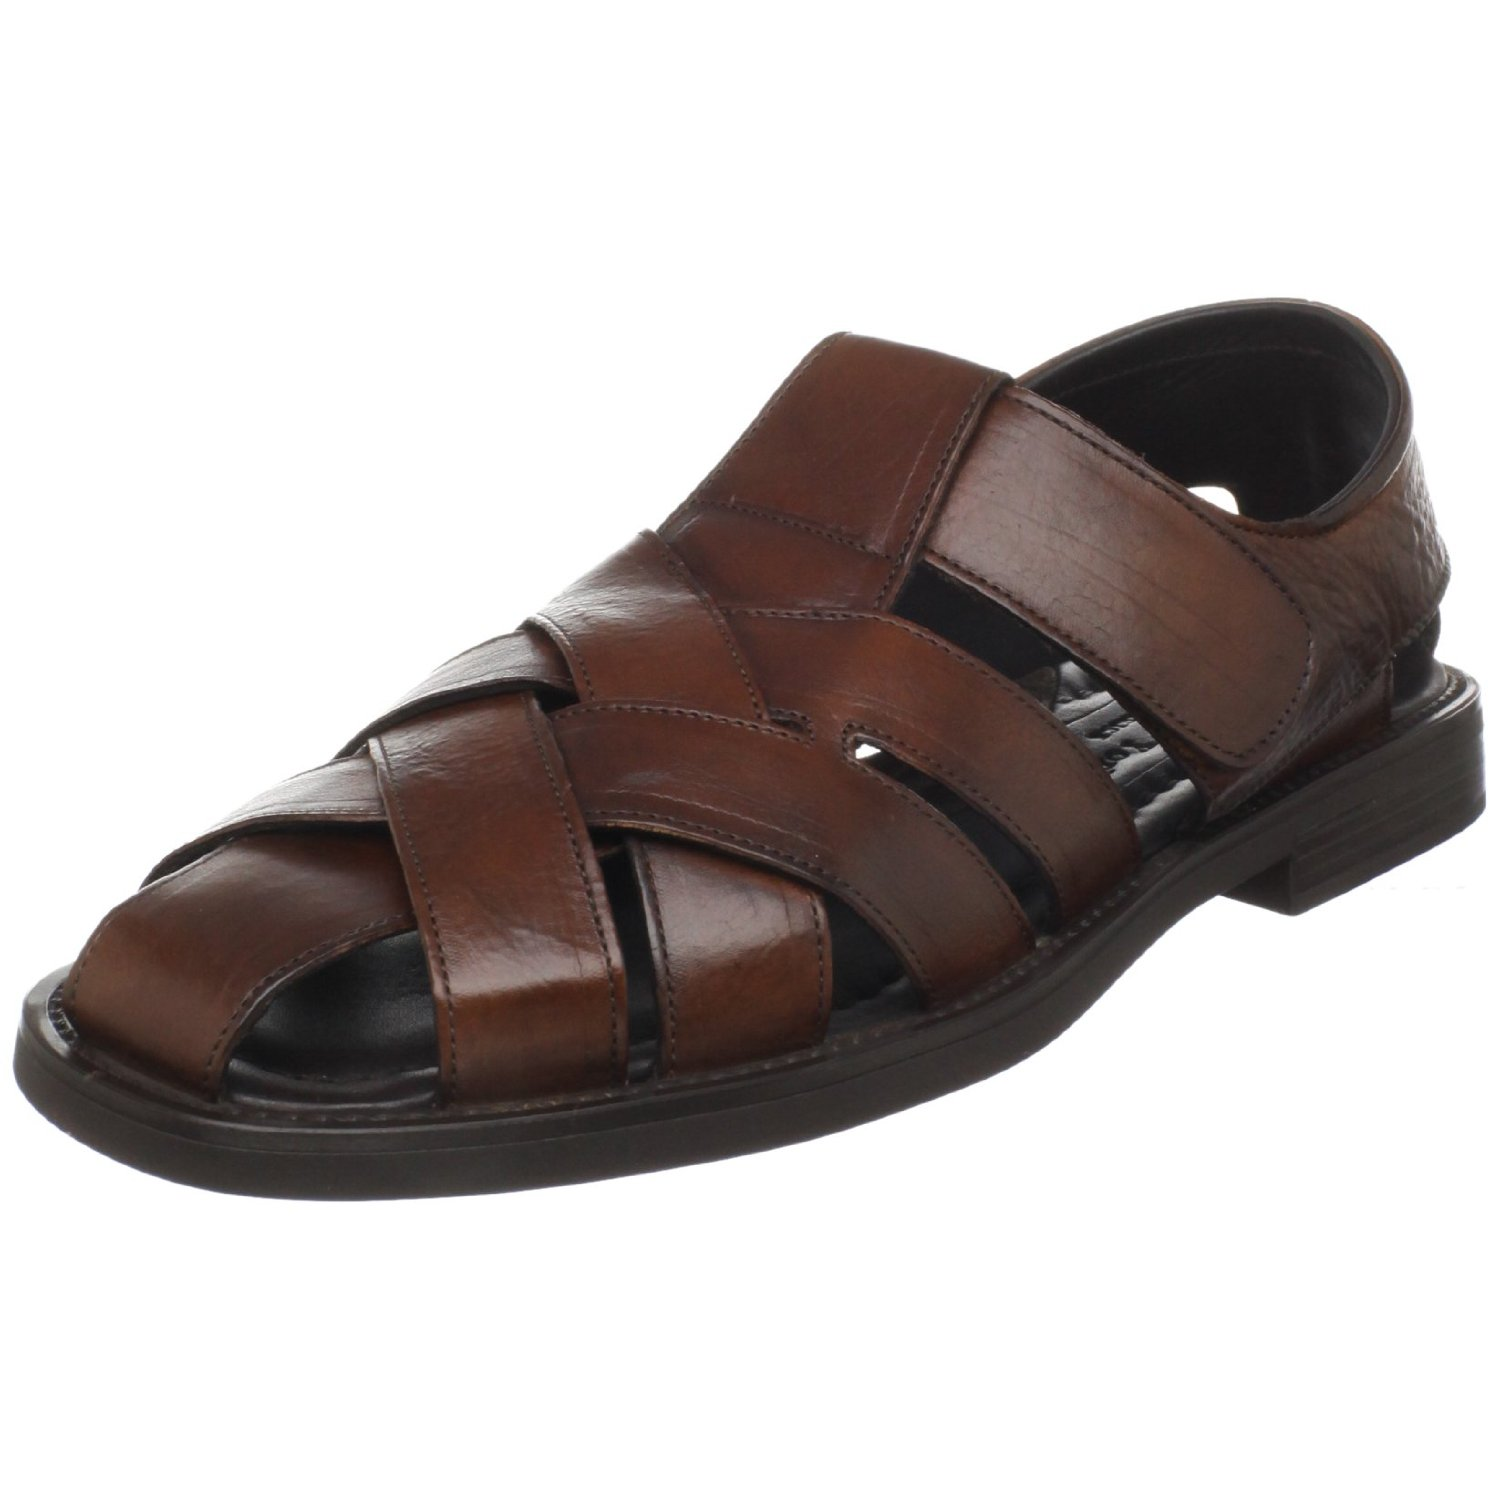 Men 39 s sandals nyc men sandals for Mens fishing sandals